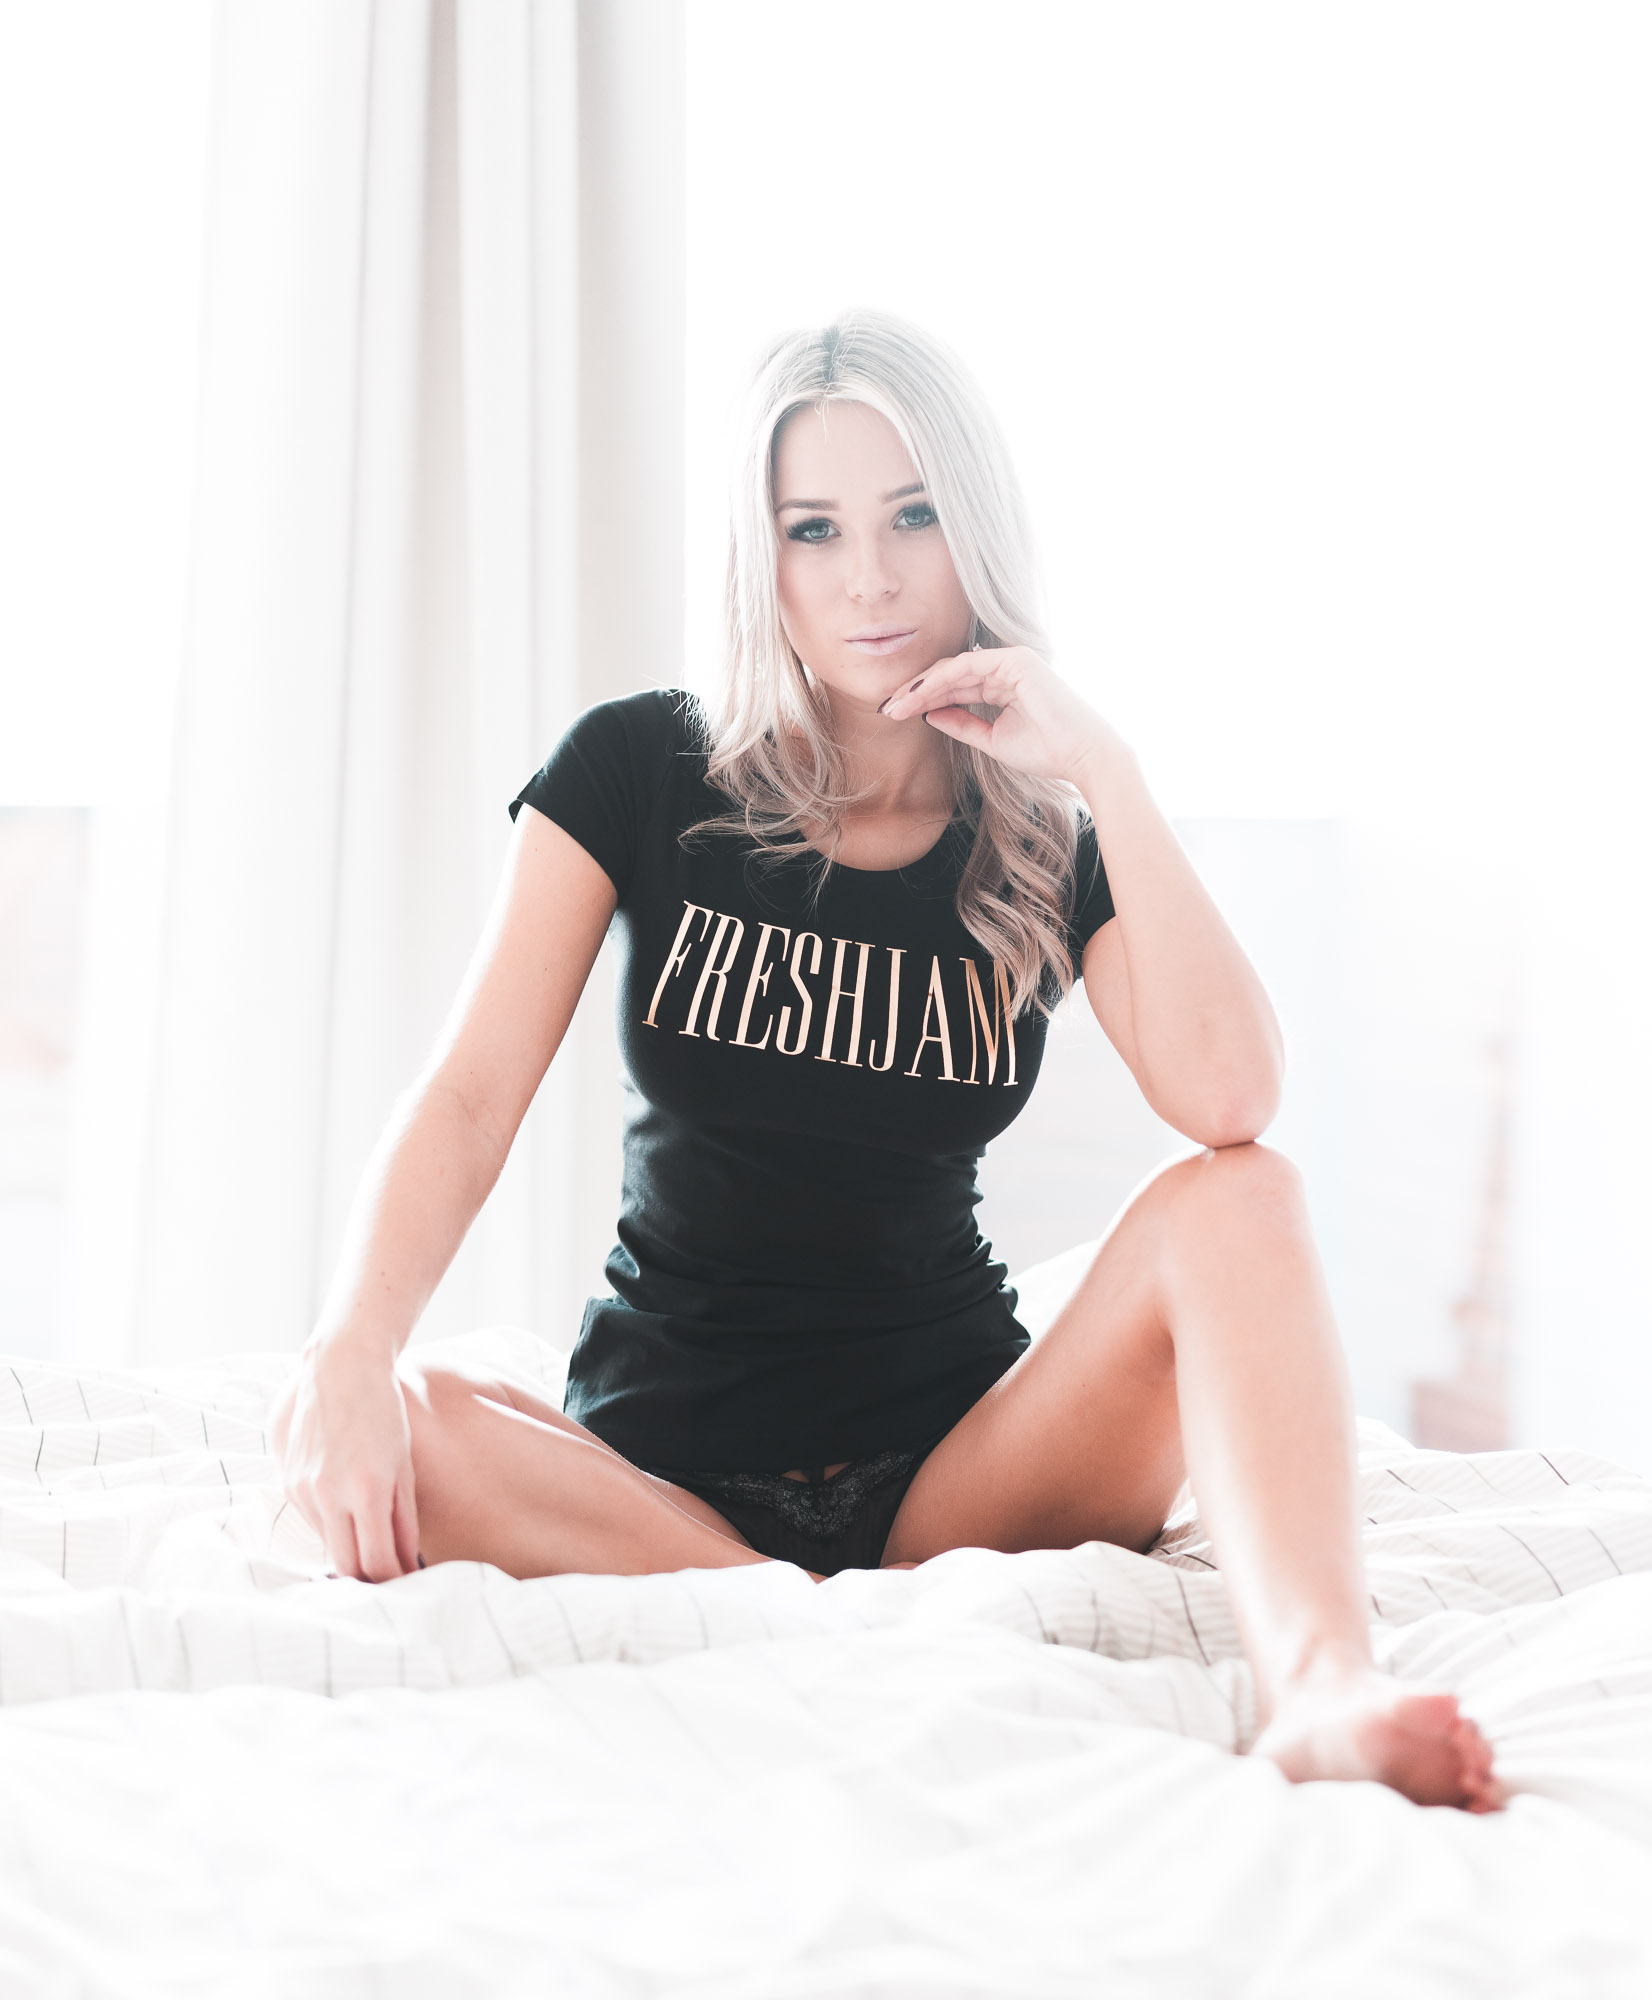 FRESHJAM GOLD LUX Woman in Bed